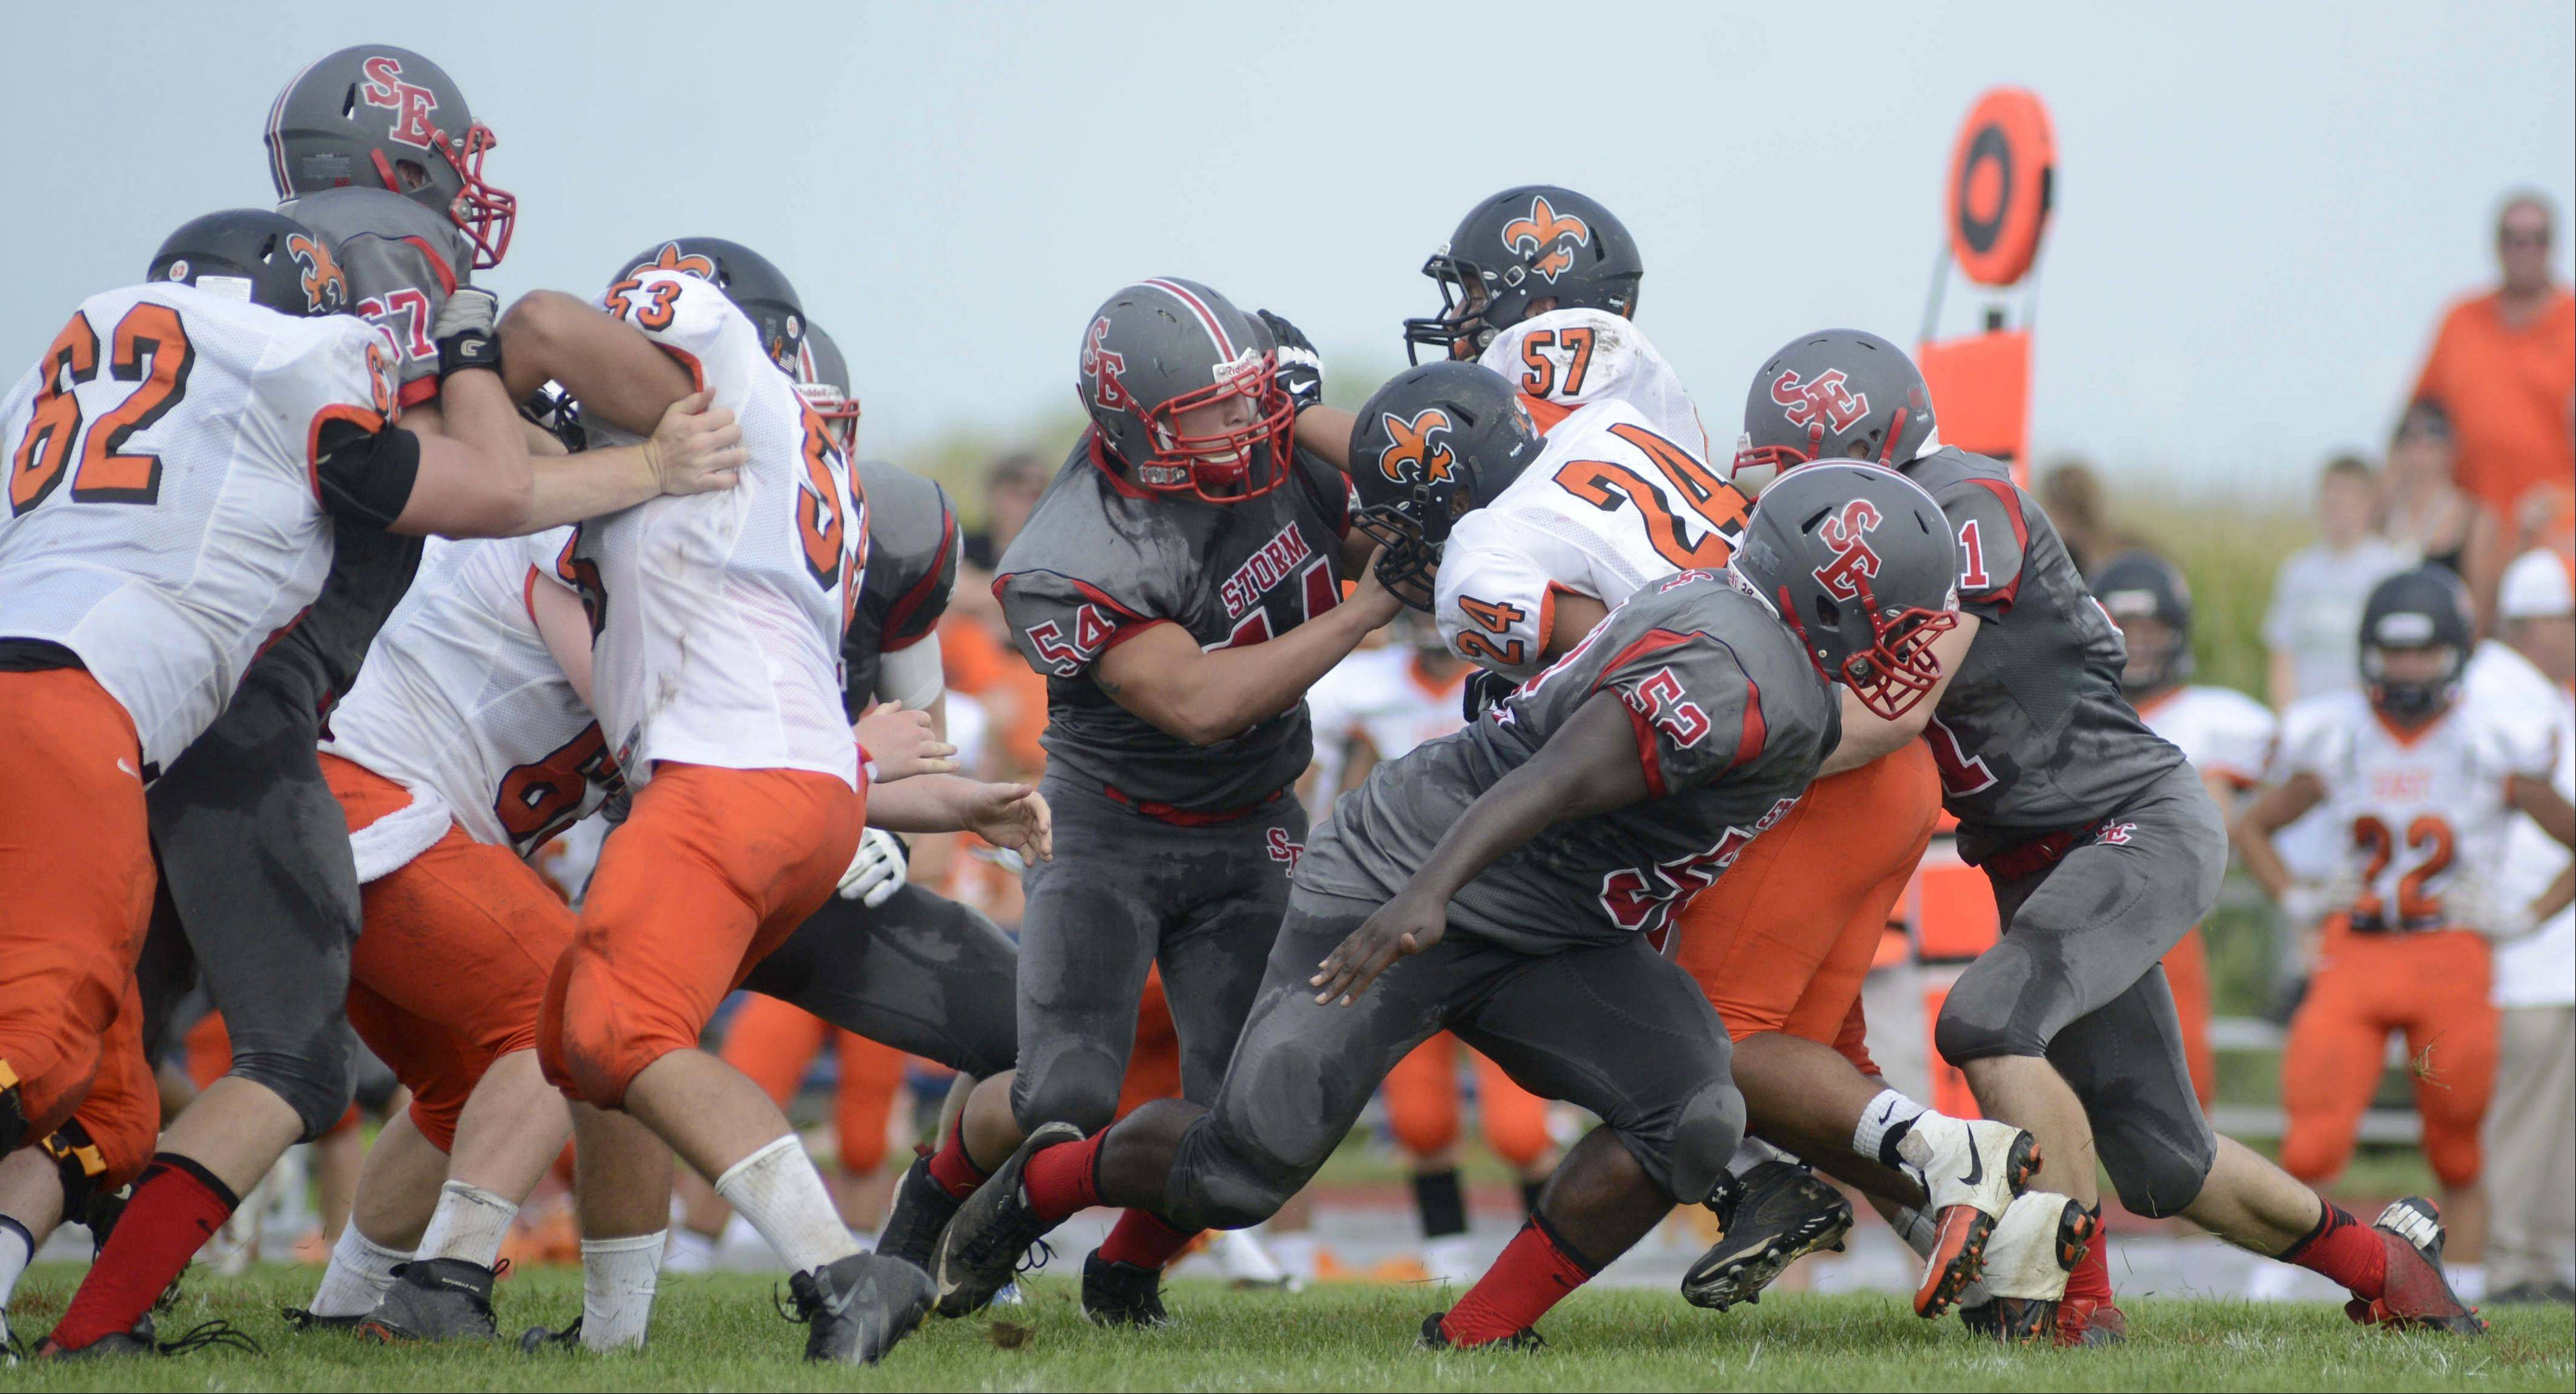 Week 1 � Images from the St. Charles East vs. South Elgin football game Saturday, August 31, 2013.